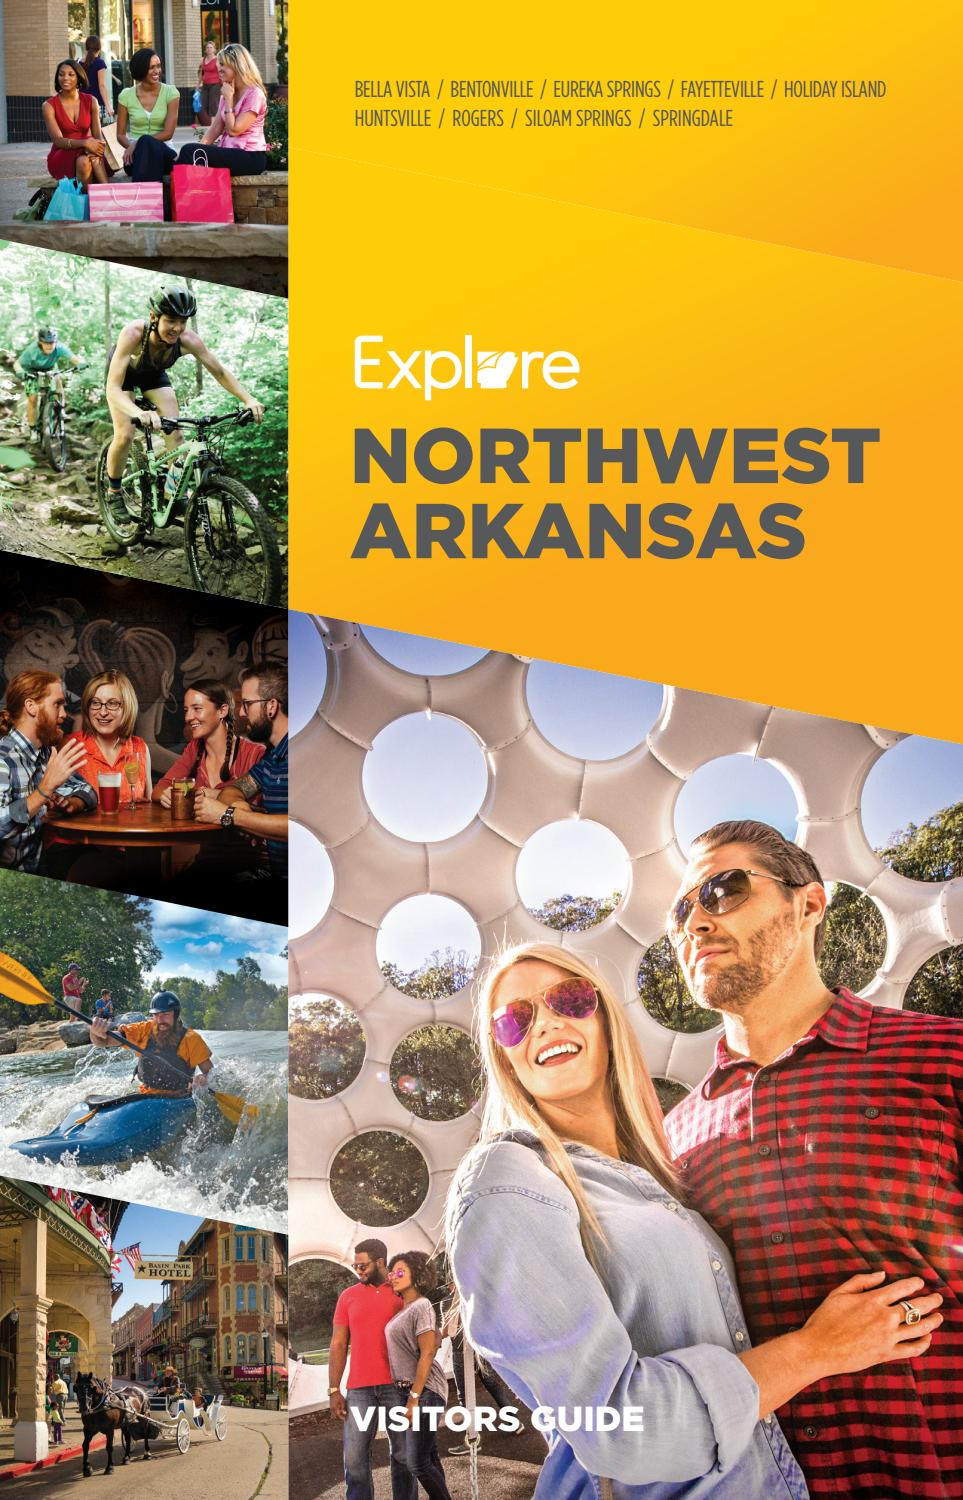 Northwest Arkansas Visitors Guide By Vantage Point Commmunications